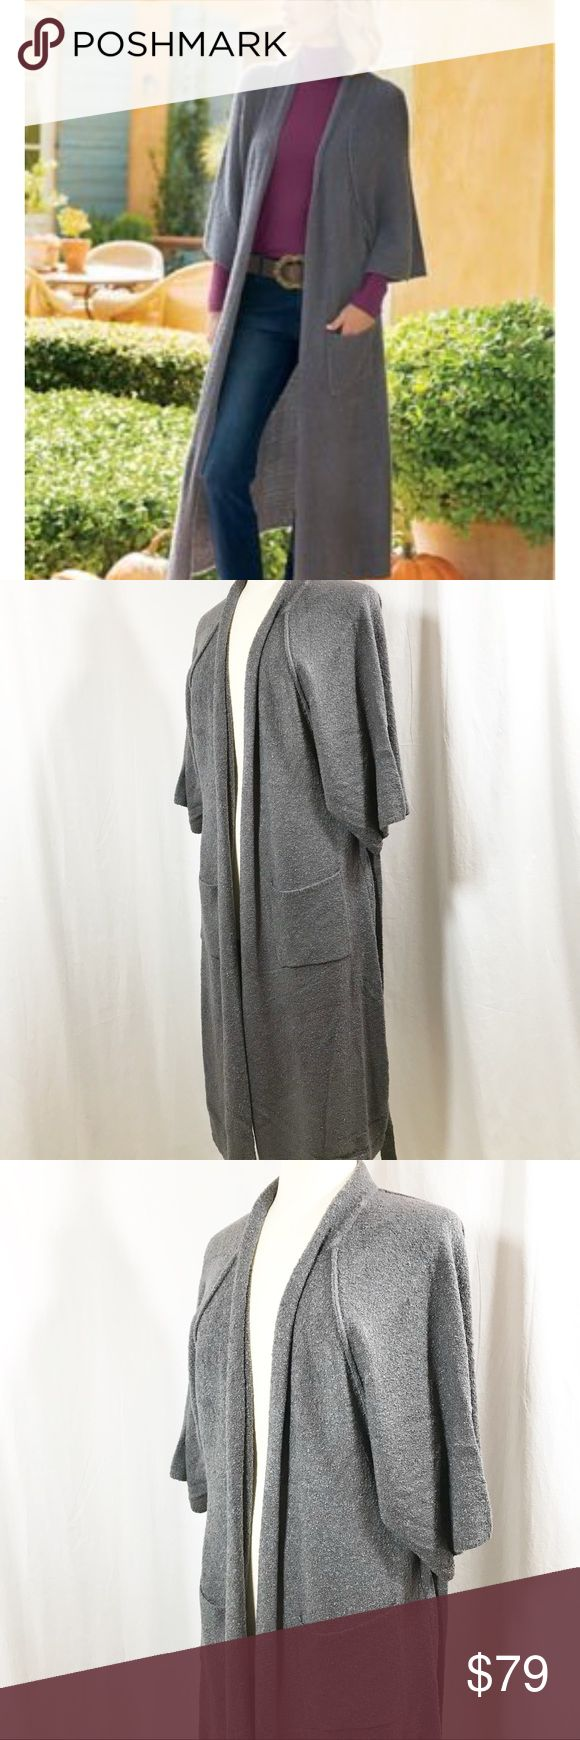 """Soft Surroundings Boucle Long Kimono Cardigan Soft Surroundings Boucle Long Kimono Cardigan Dark Slate Gray Sweater Softness to the max, this long bouclé cardigan features an open front with self-belt, raglan sleeves and slouchy patch pockets. It's a versatile toss-on in a rich neutral shade, and handy to have around when the temperatures dip.  83% Acrylic 15% Nylon 2% Spandex ~ Machine wash  Brand New with Tags ~ $110  Women's Size Small Underarm to Underarm - 23"""" Top of Shoulder to Hem…"""